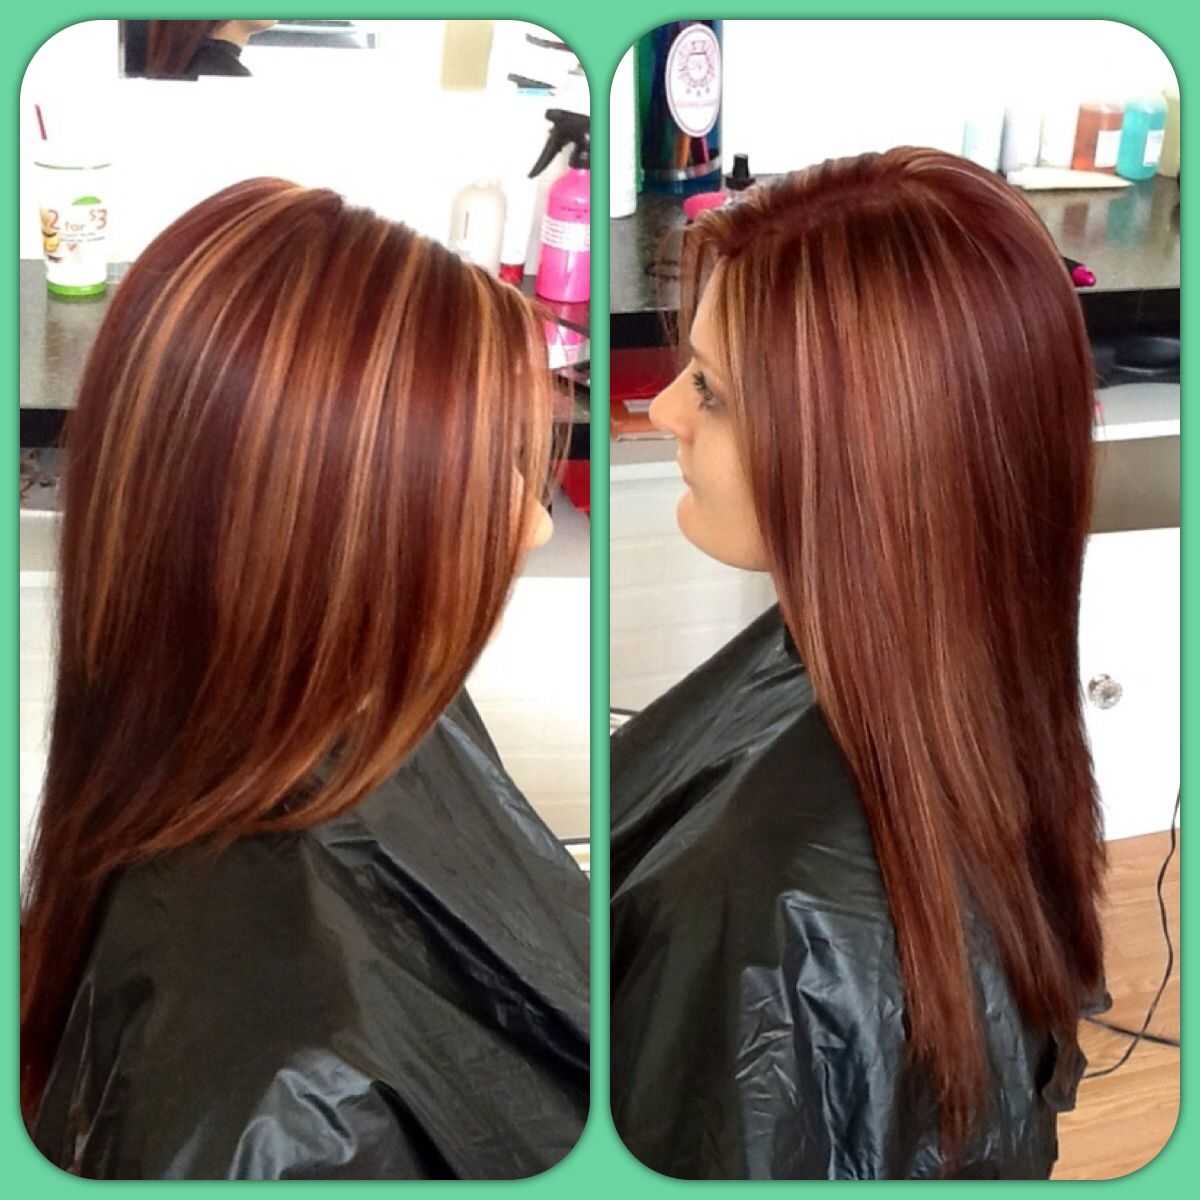 Red Hair Color Dimensional Color Highlights Can T Wait To Do This Next Hair Color Auburn Auburn Hair With Highlights Hair Styles